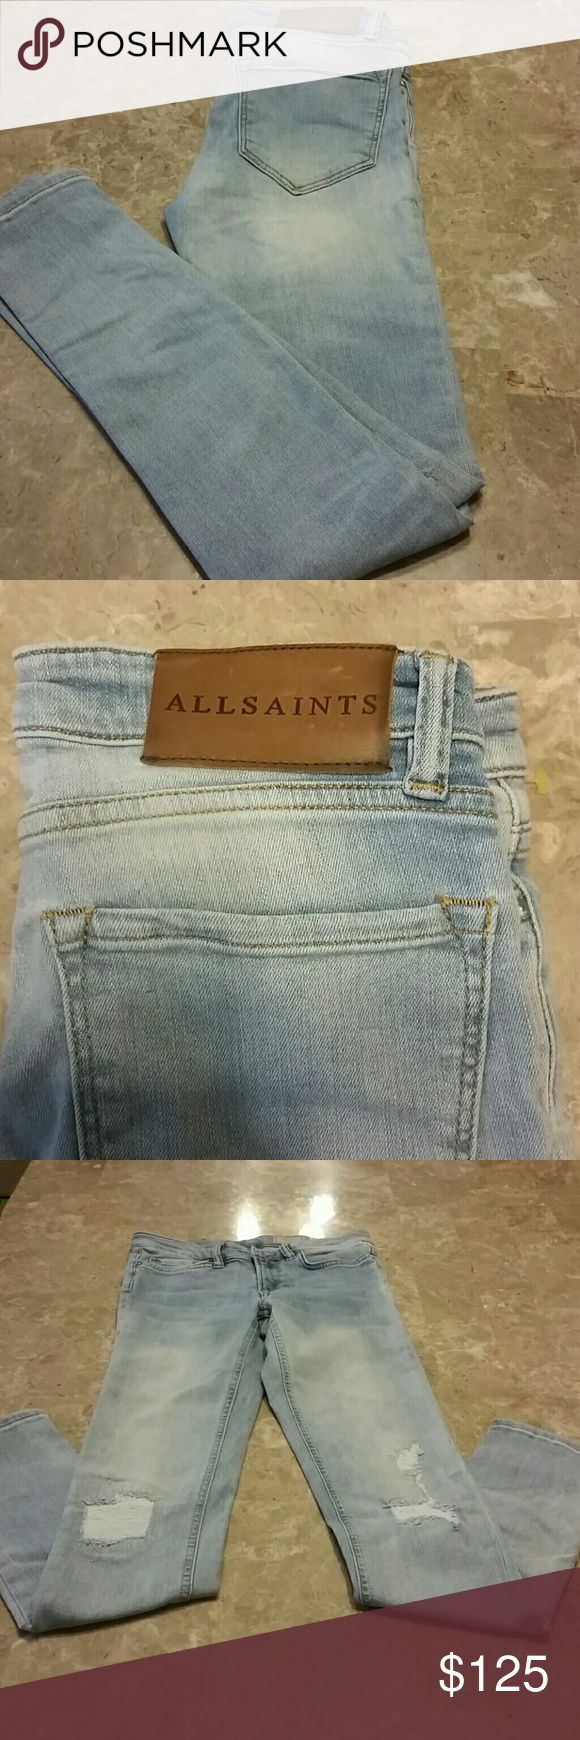 ALLSAINTS Mast Distressed Low Rise Skinny Jeans These jeans from ALLSAINTS are really cool and HARD TO FIND with distressed, scuffed, knee patches. They fit small, go one size up. ALLSAINTS   Jeans Skinny